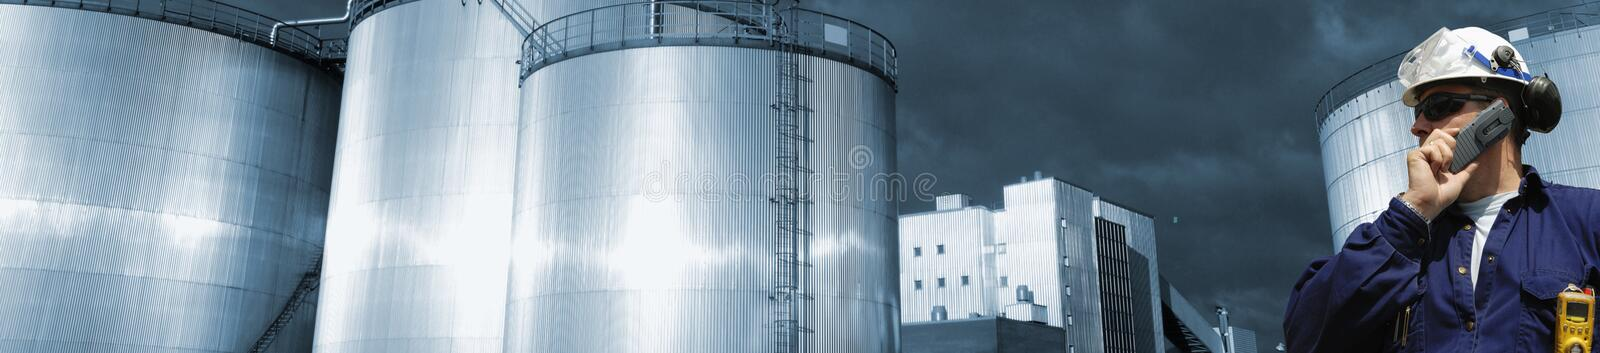 Oil and fuel storage with worker. Oil worker talking in phone, large fuel storage towers in the background, panoramic view royalty free stock image